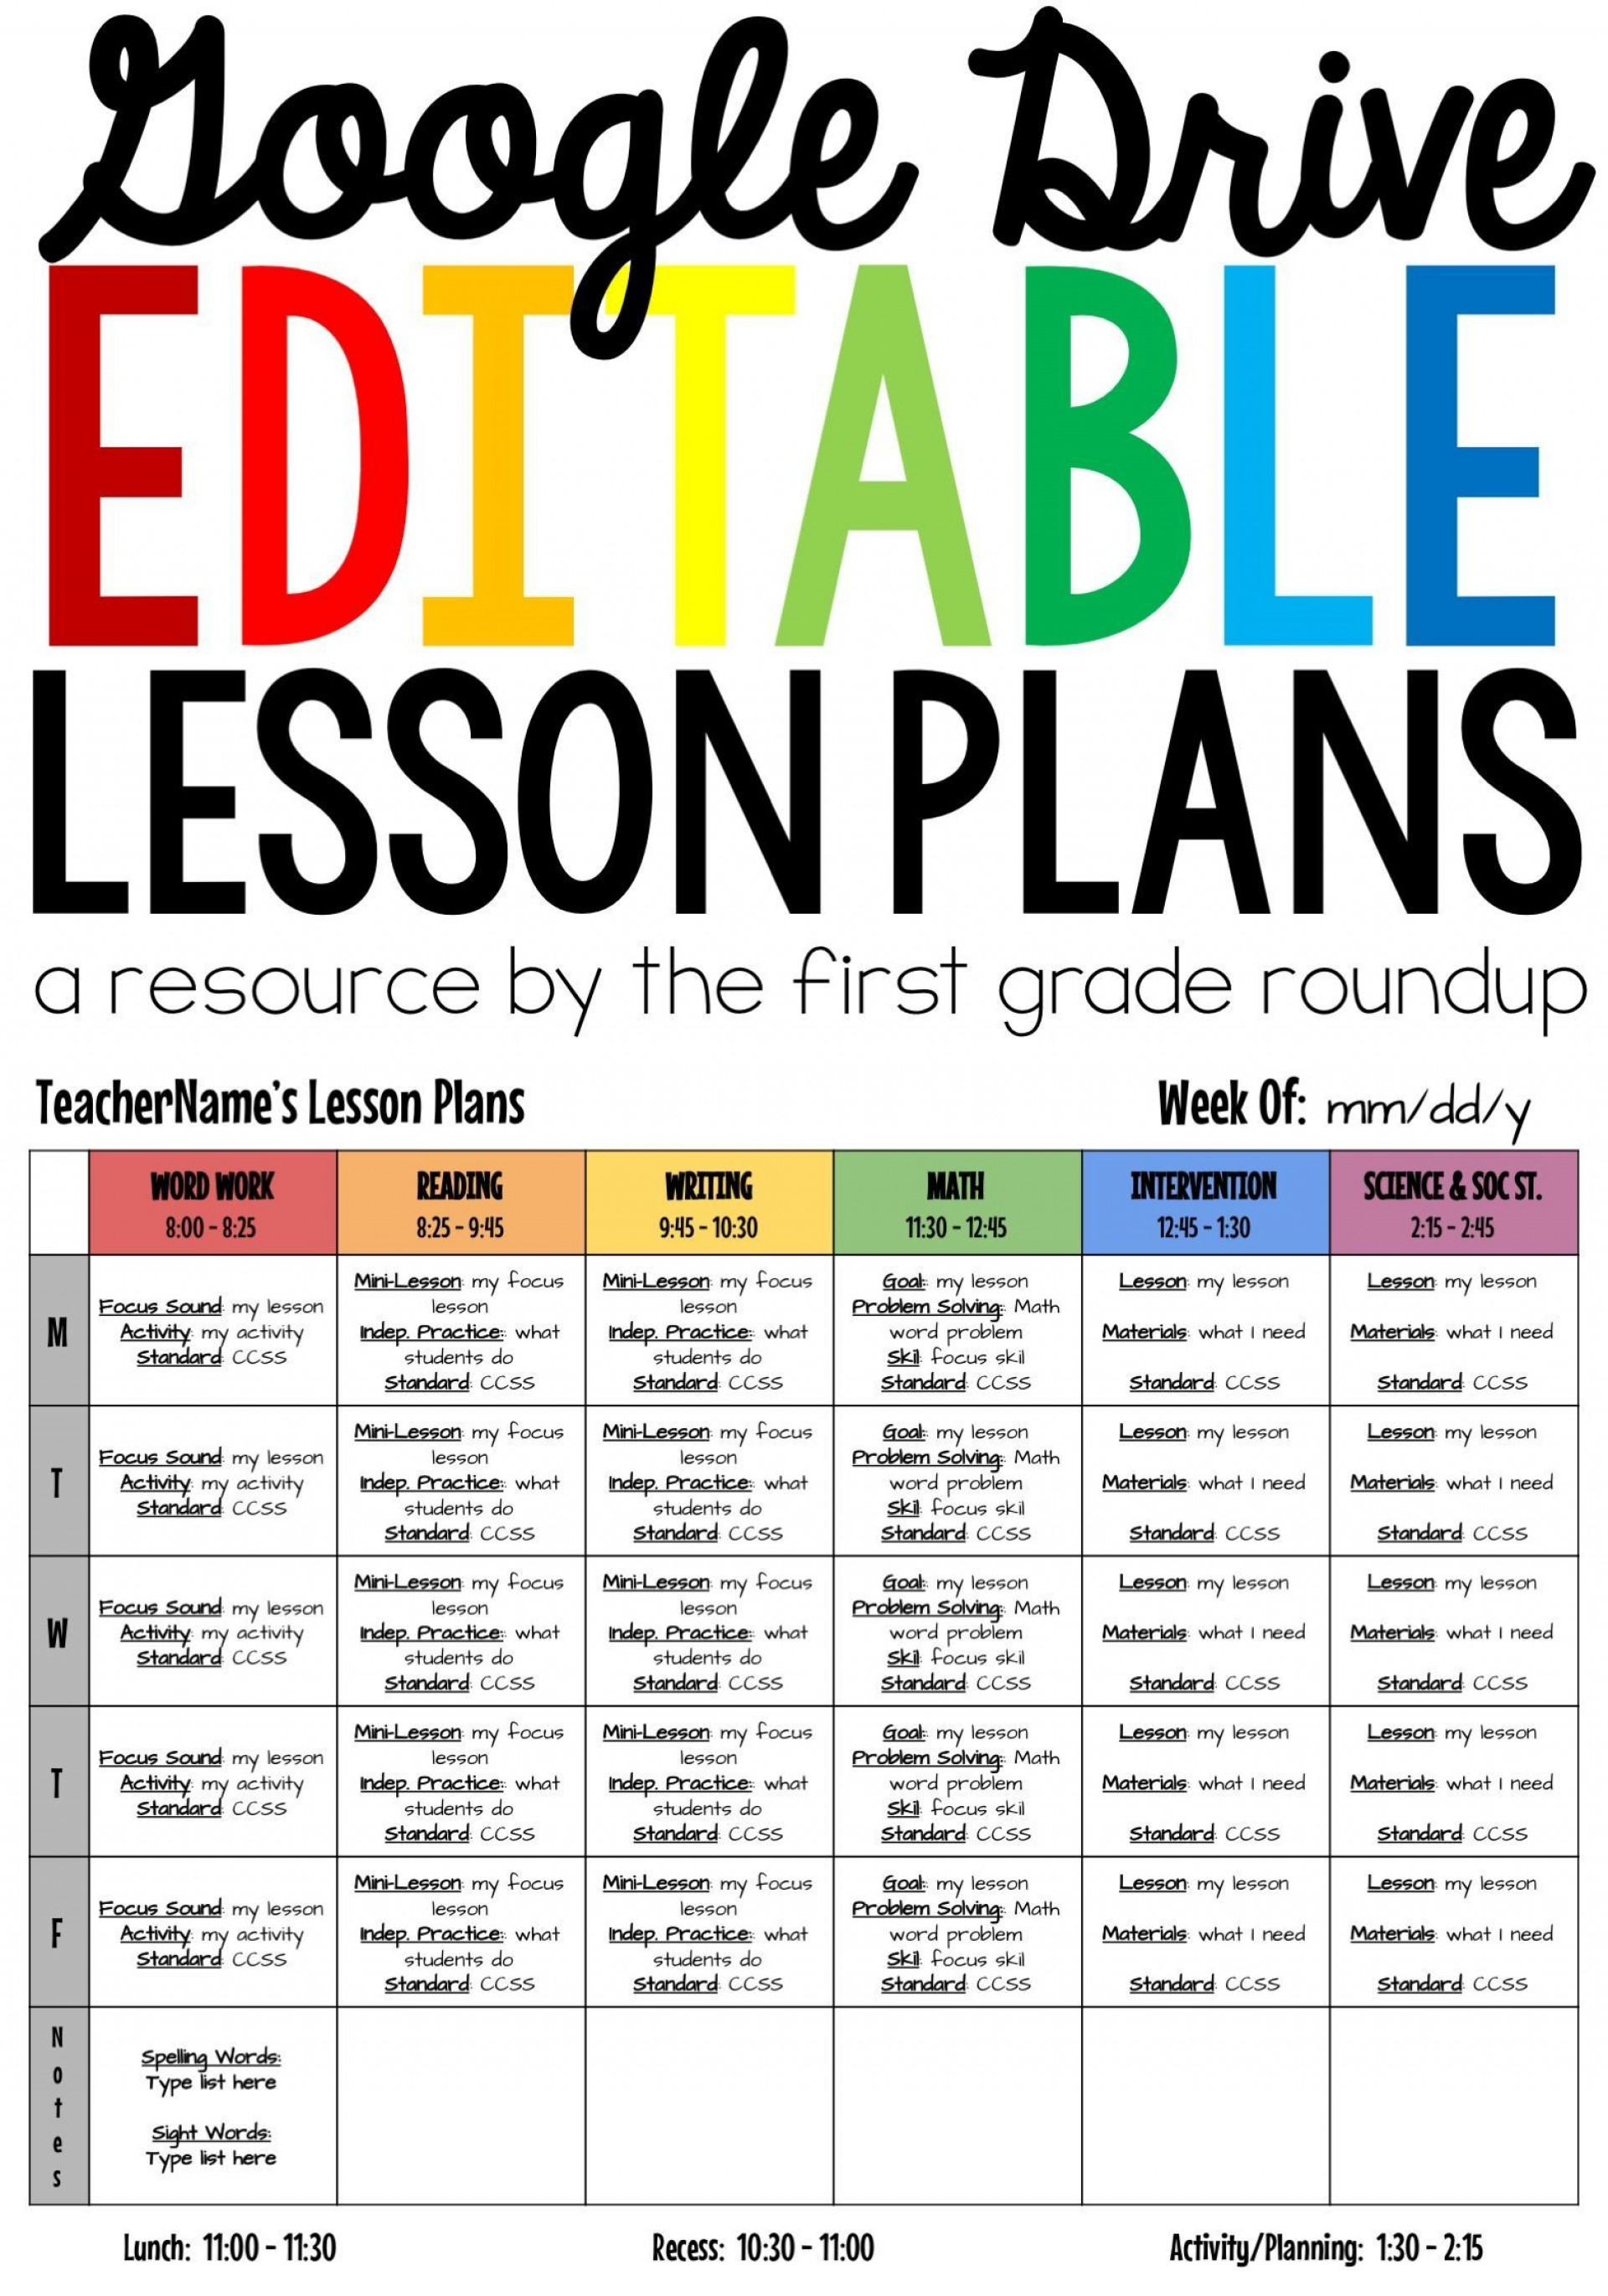 003 Incredible Weekly Lesson Plan Template Google Doc Sample  Docs 5e Simple1920